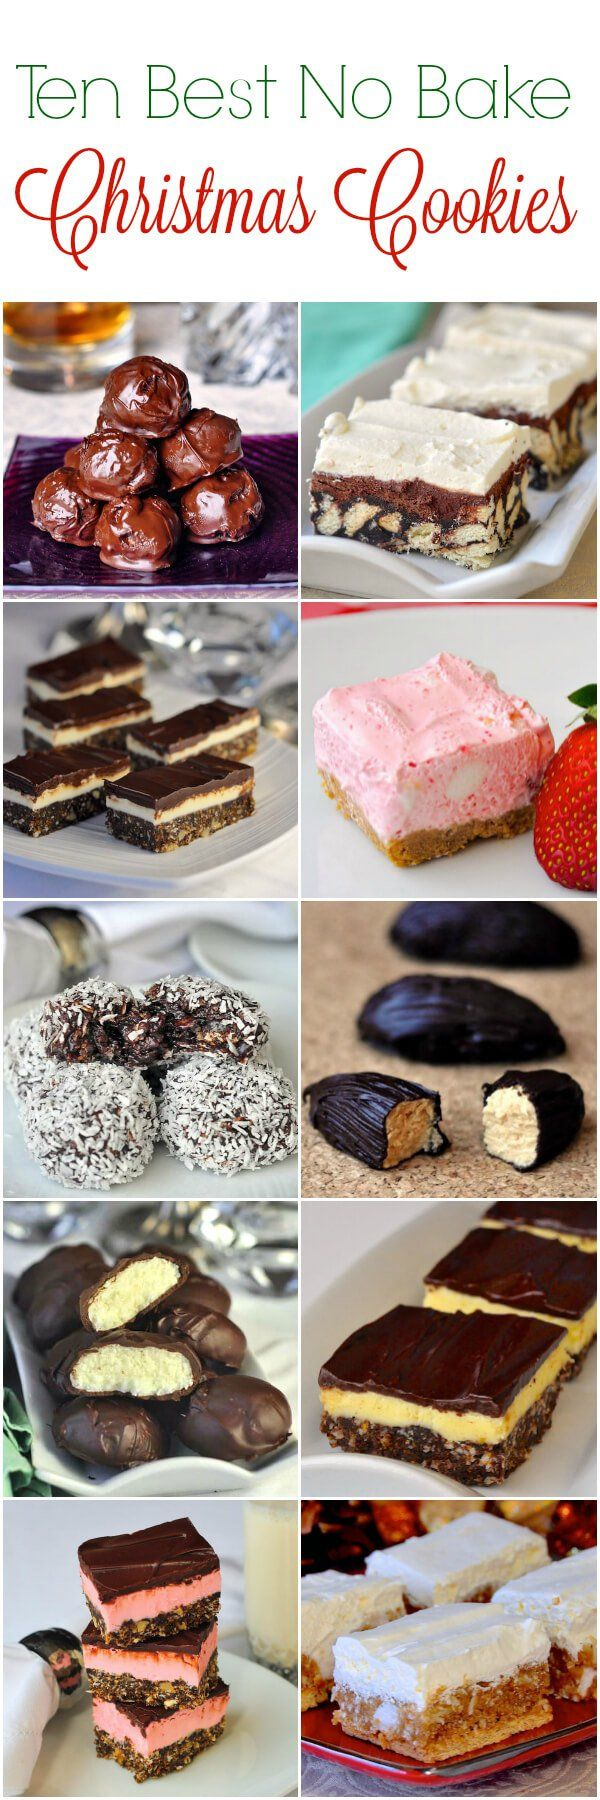 Ten of our best recipes for No Bake Christmas Cookies. Everything from Chocolate Mint Nanaimo Bars and Bourbon Balls to Strawberry Chiffon Squares and Winter White Cookies!